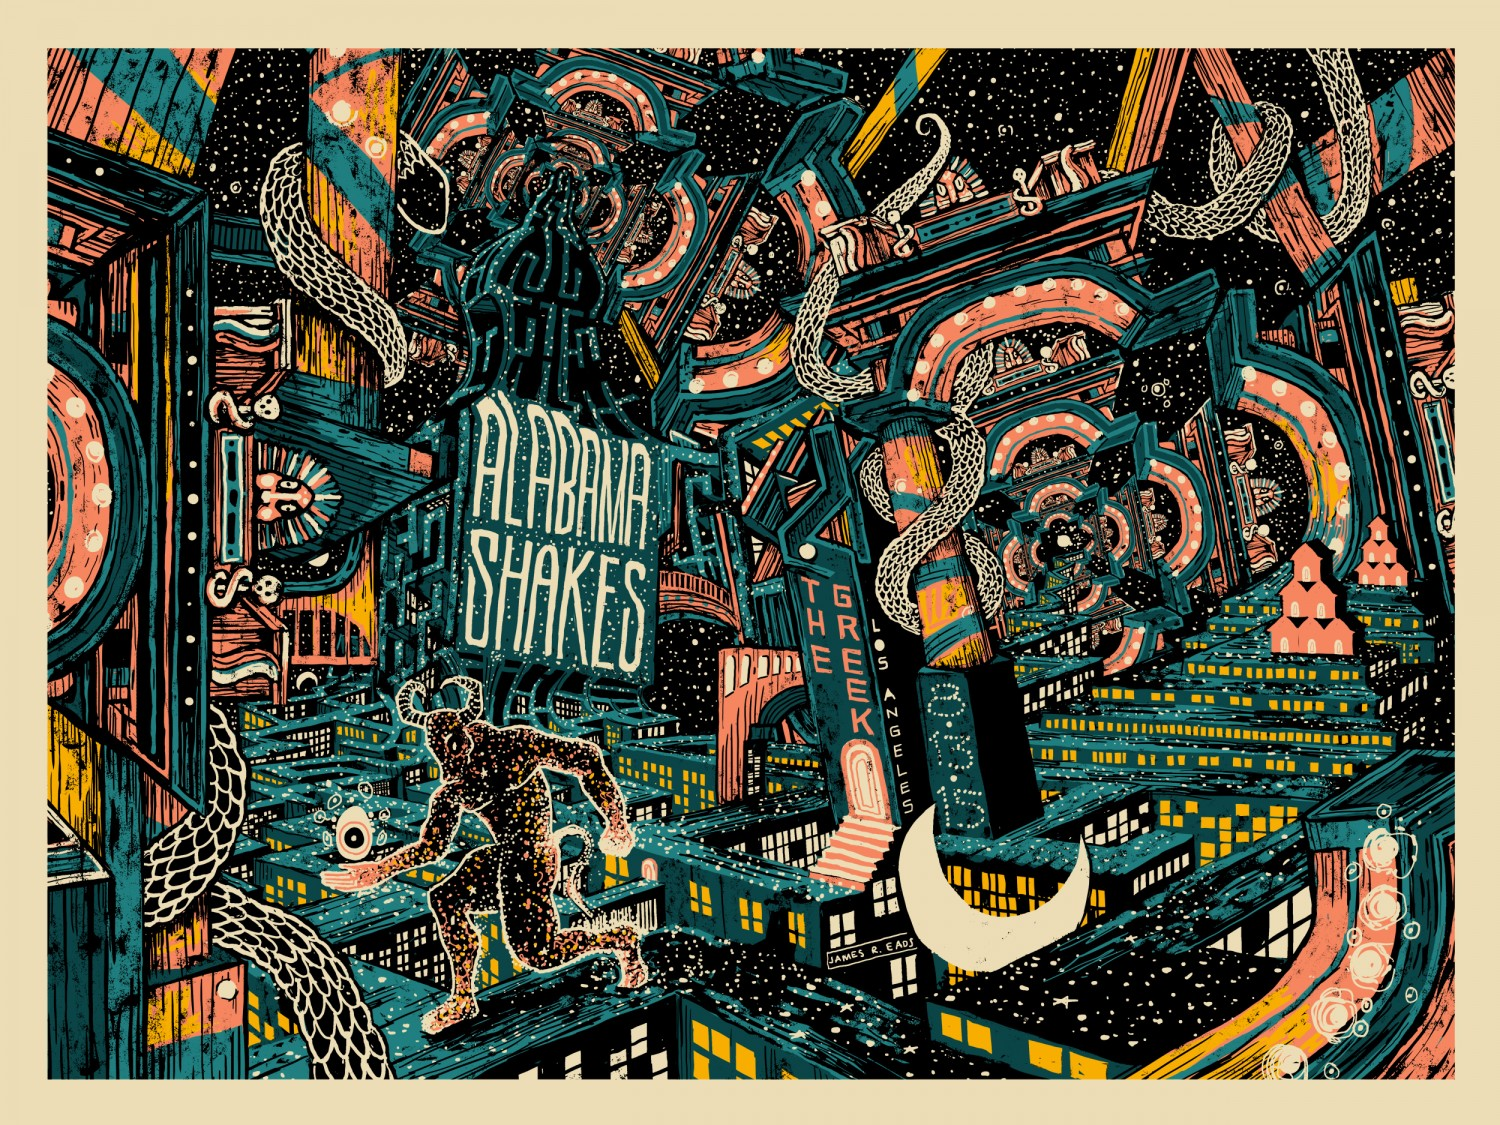 """Alabama Shakes - Los Angeles, CA 2015"" by James R Eads.  18"" x 24"" 5-color Screenprint.  AP edition of 35 S/N.  $50"